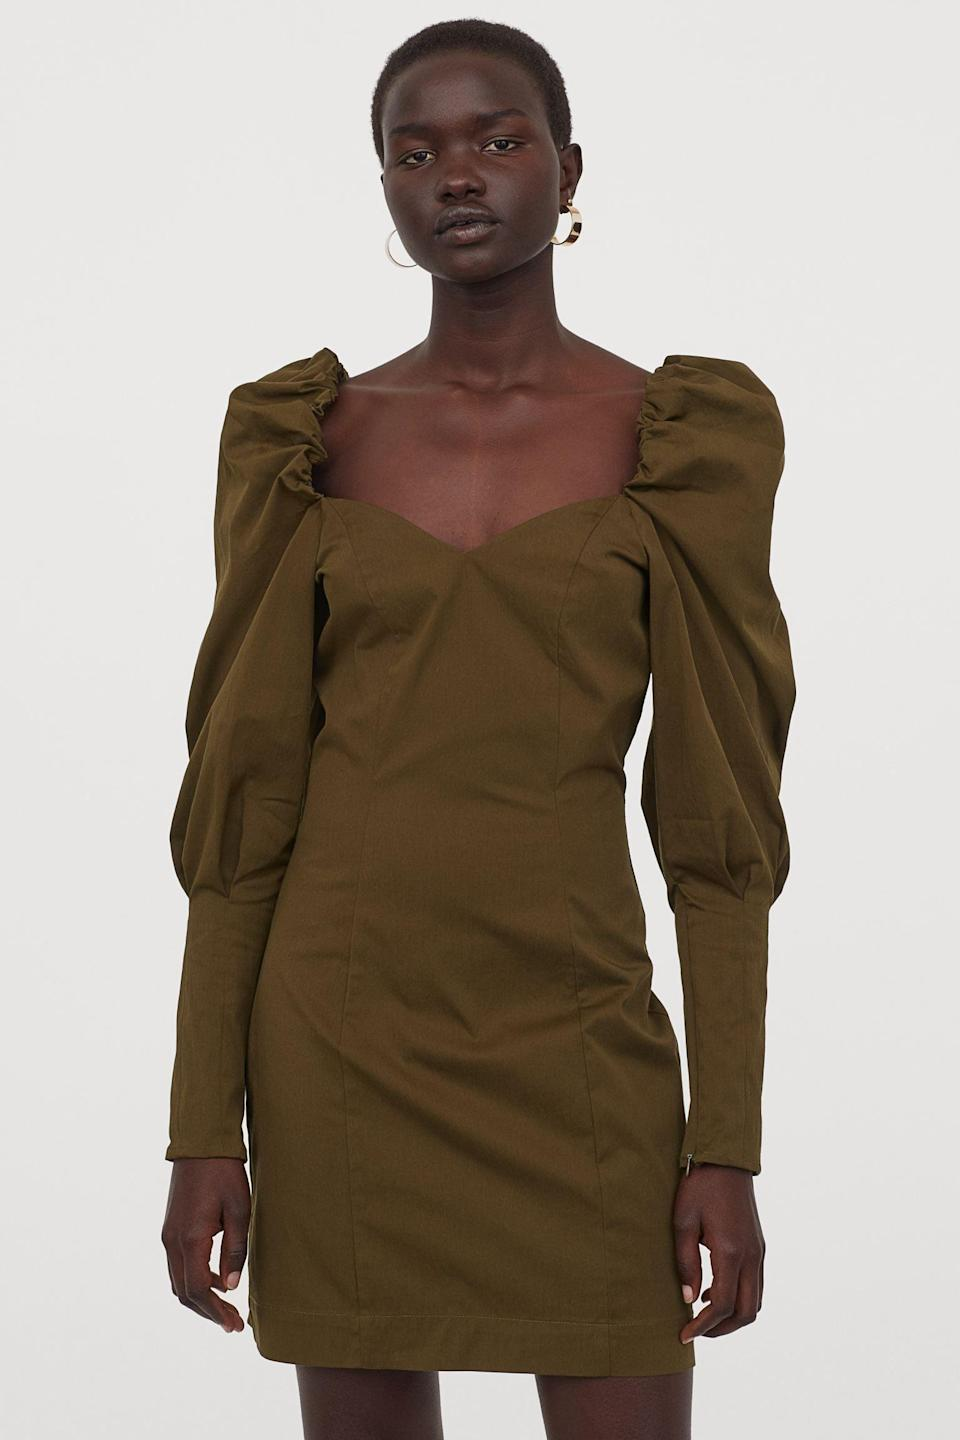 <p>Date night anyone? This elegantly feminine <span>Puff-sleeved Dress</span> ($60) will turn heads for sure.</p>